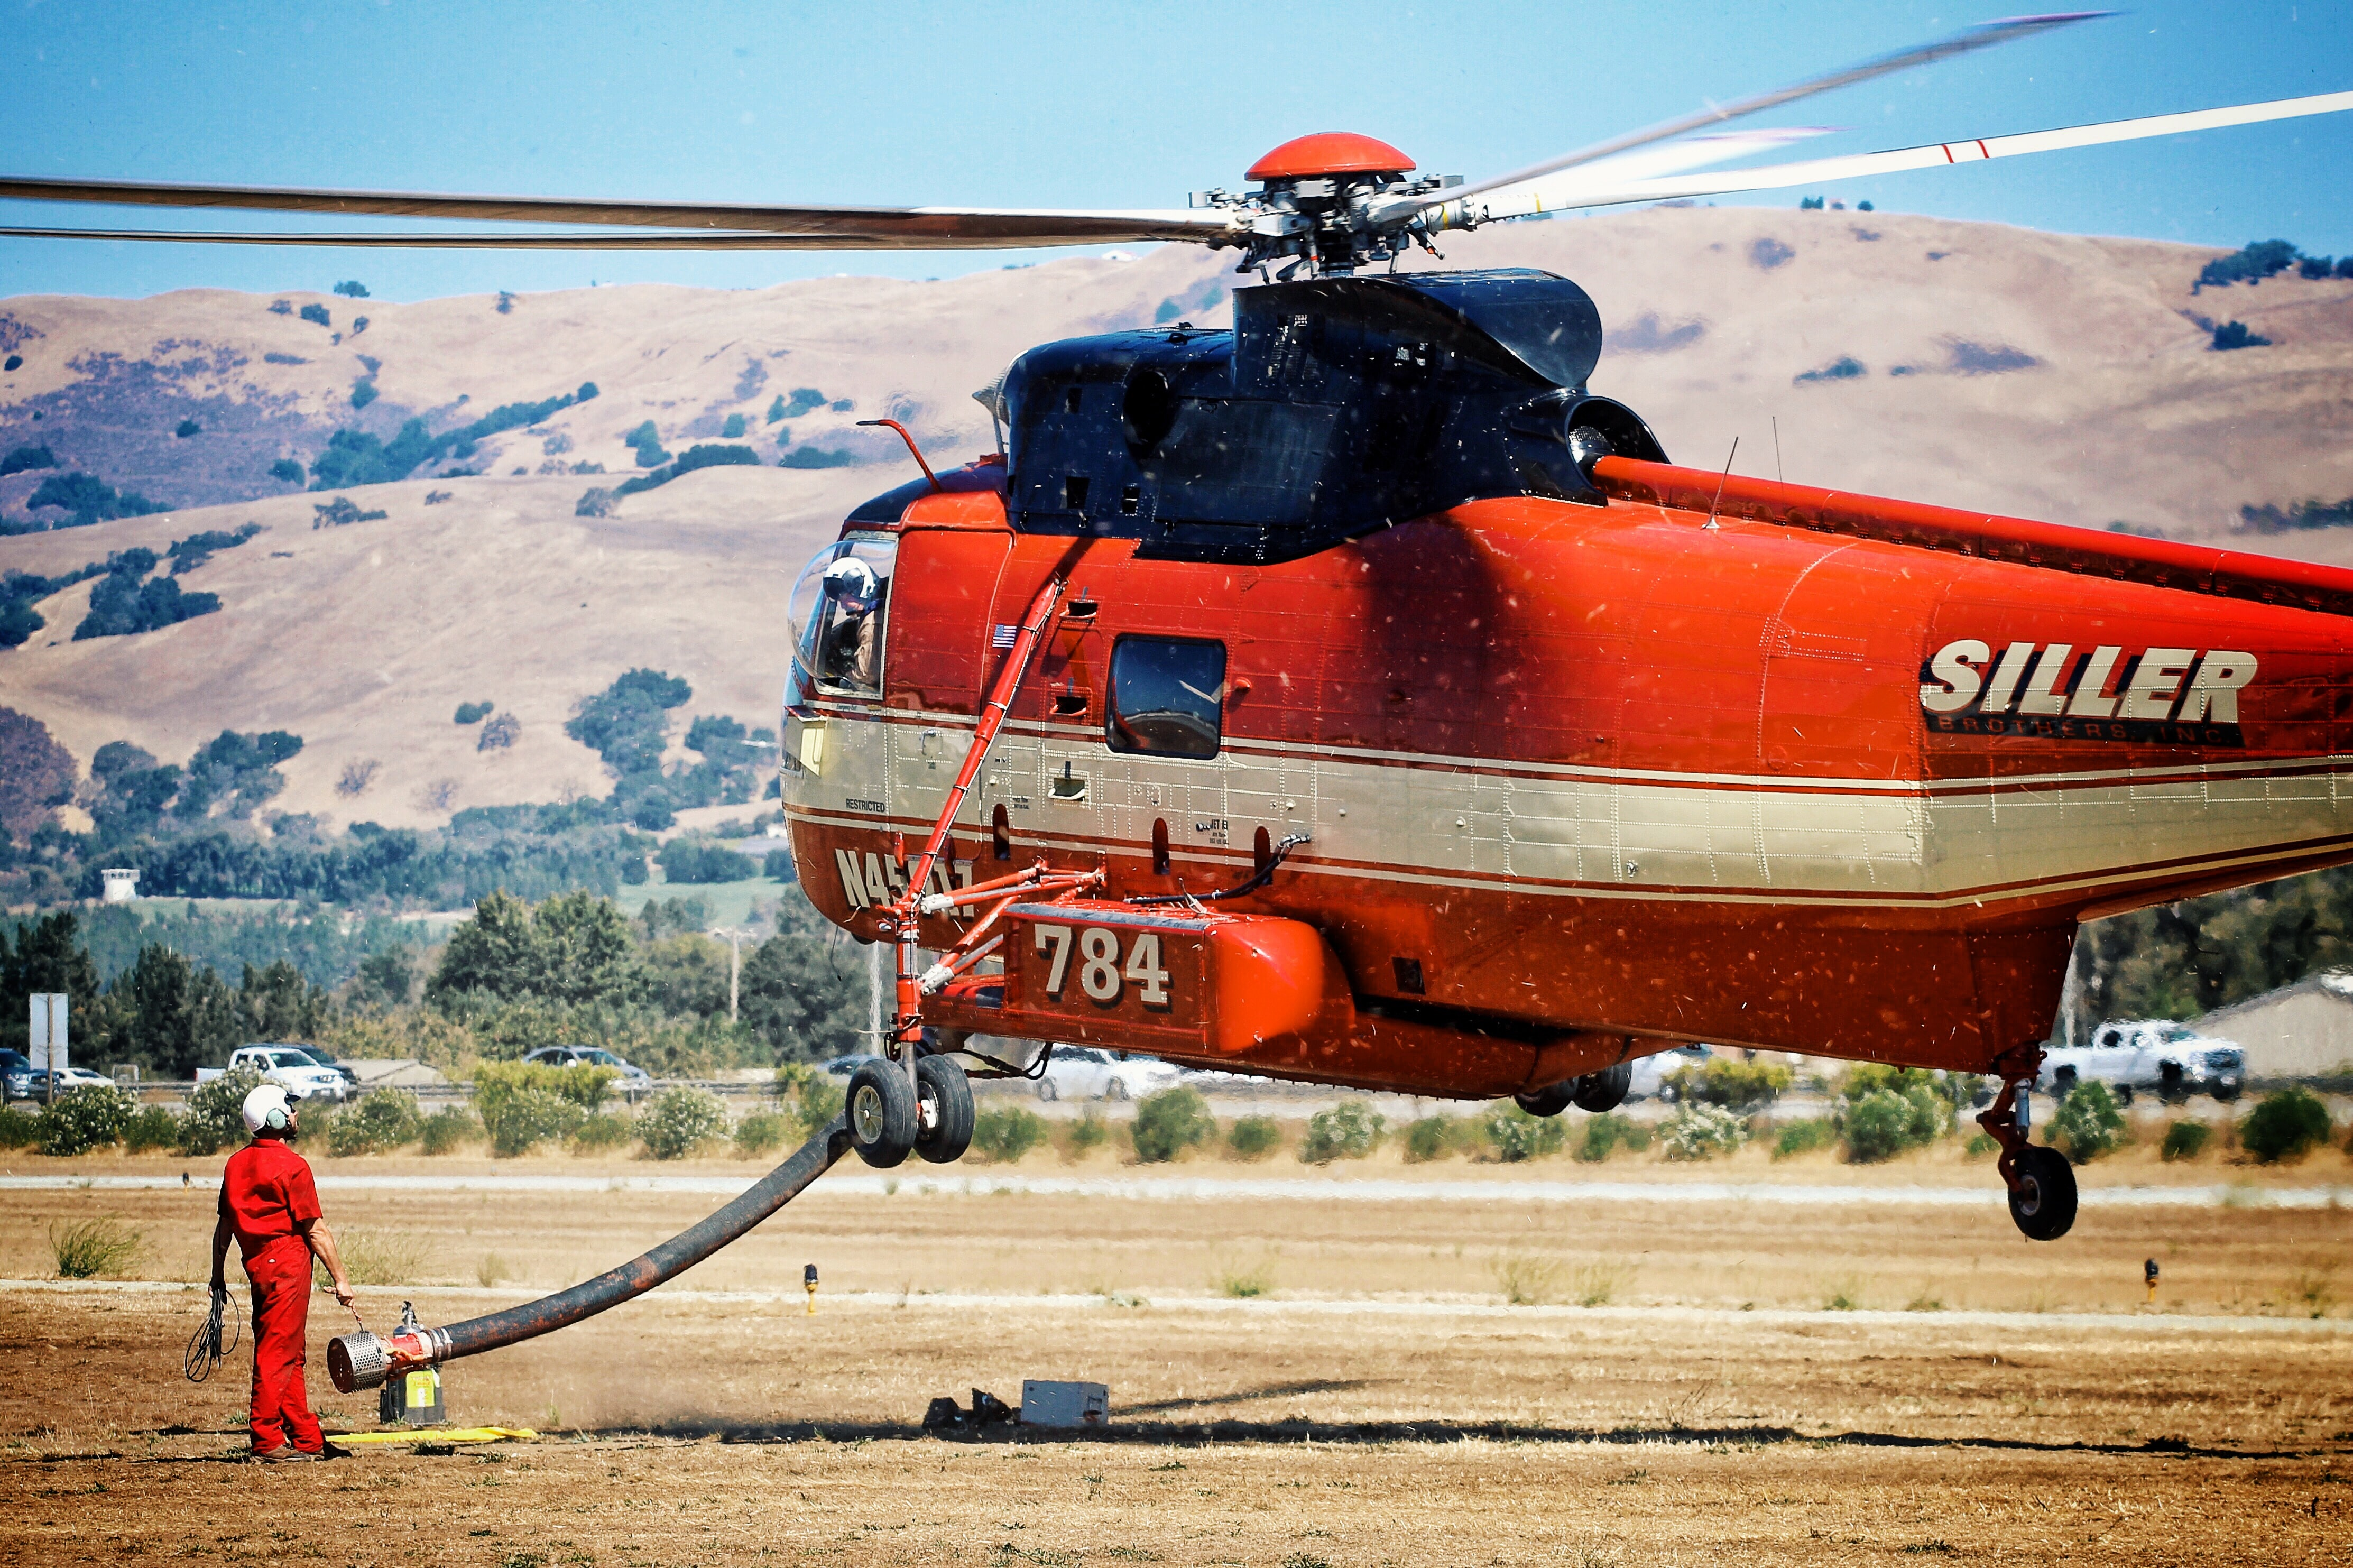 red and white Siller chopper ascending